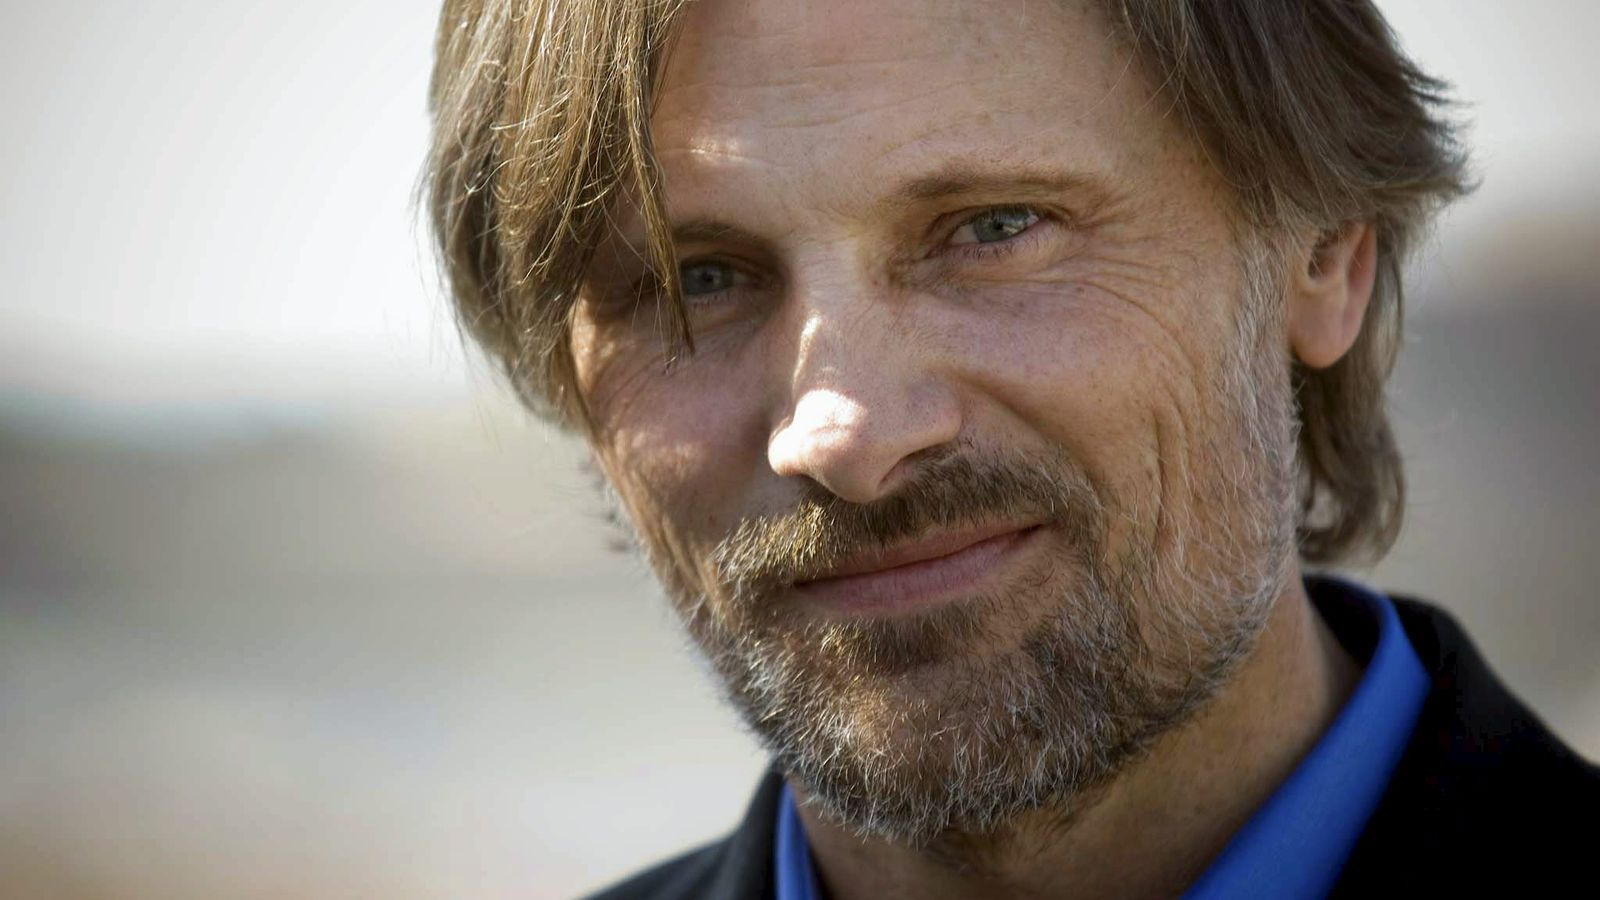 Viggo Mortensen no descarta rodar en català / LAURENT SANSEN / EFE